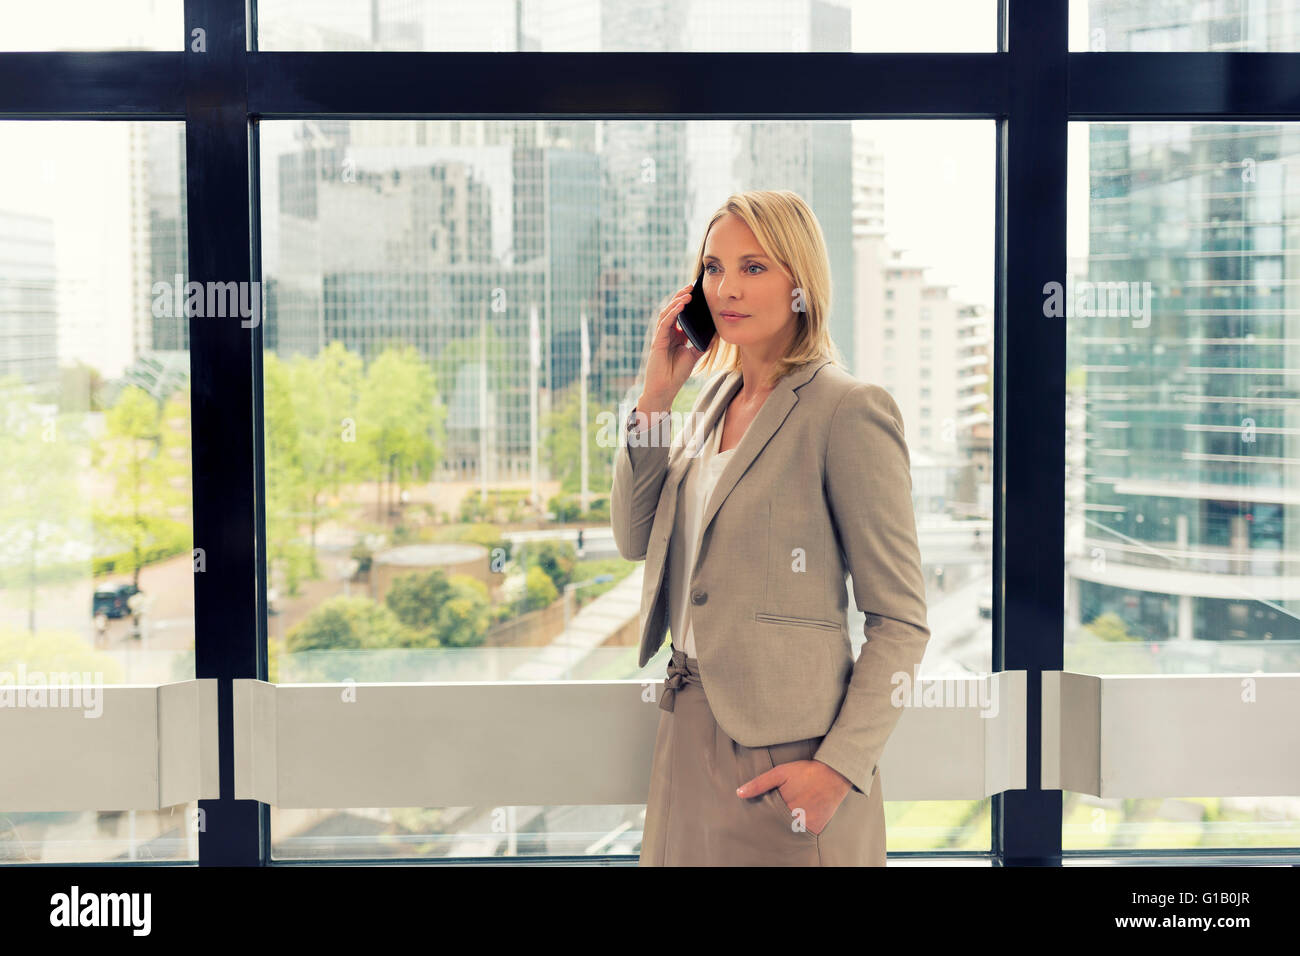 Cheerful business woman on mobile phone at modern office. Buildings background - Stock Image